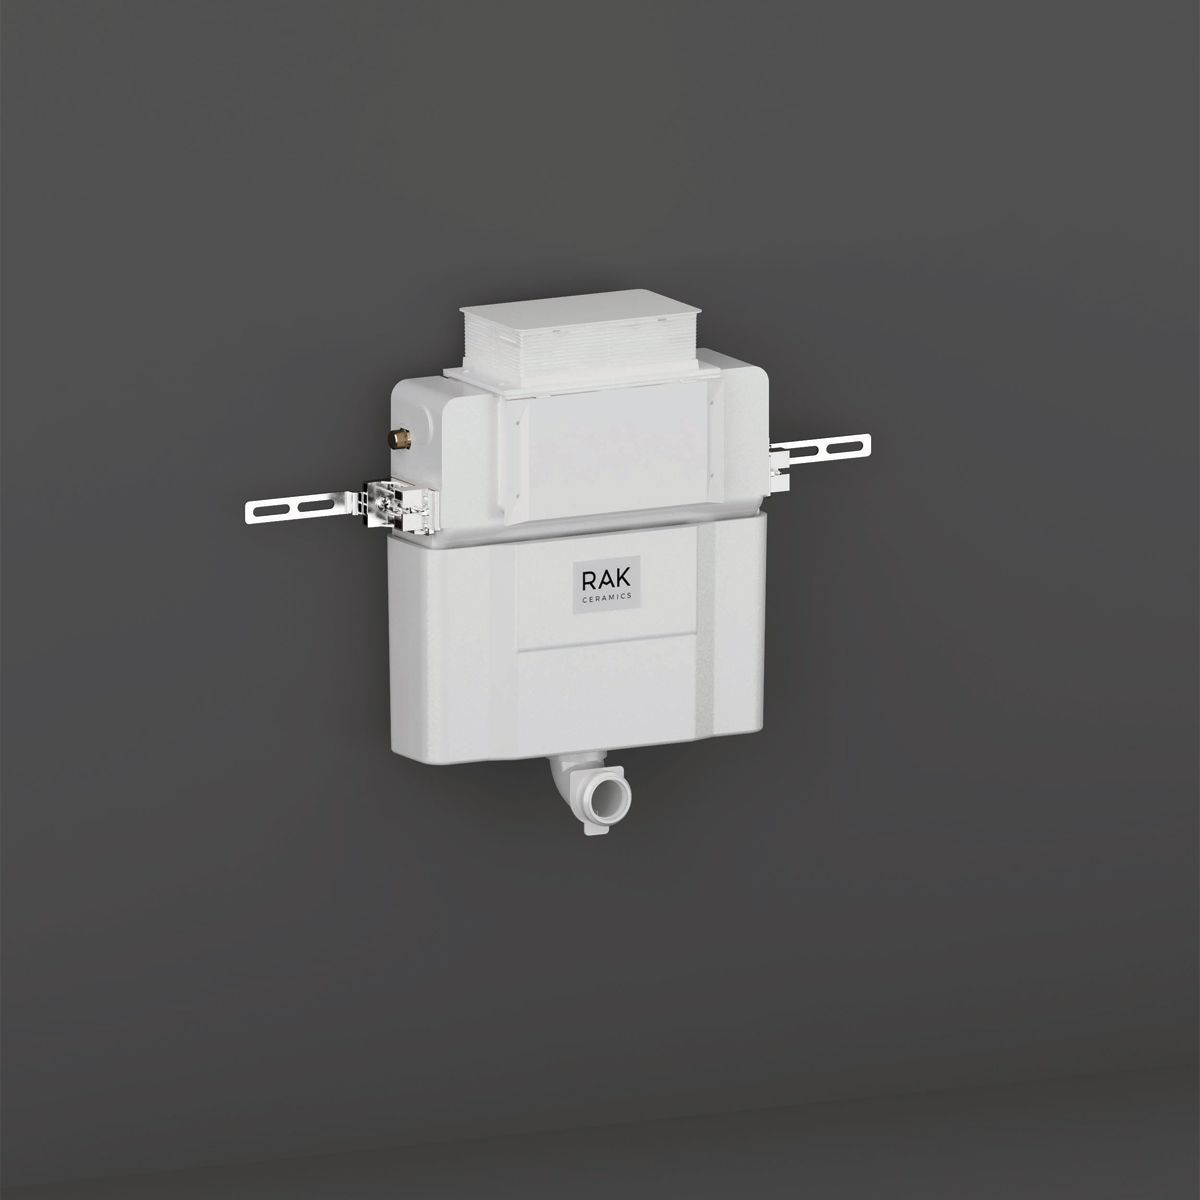 RAK Ecofix Top/Front Access Concealed Cistern